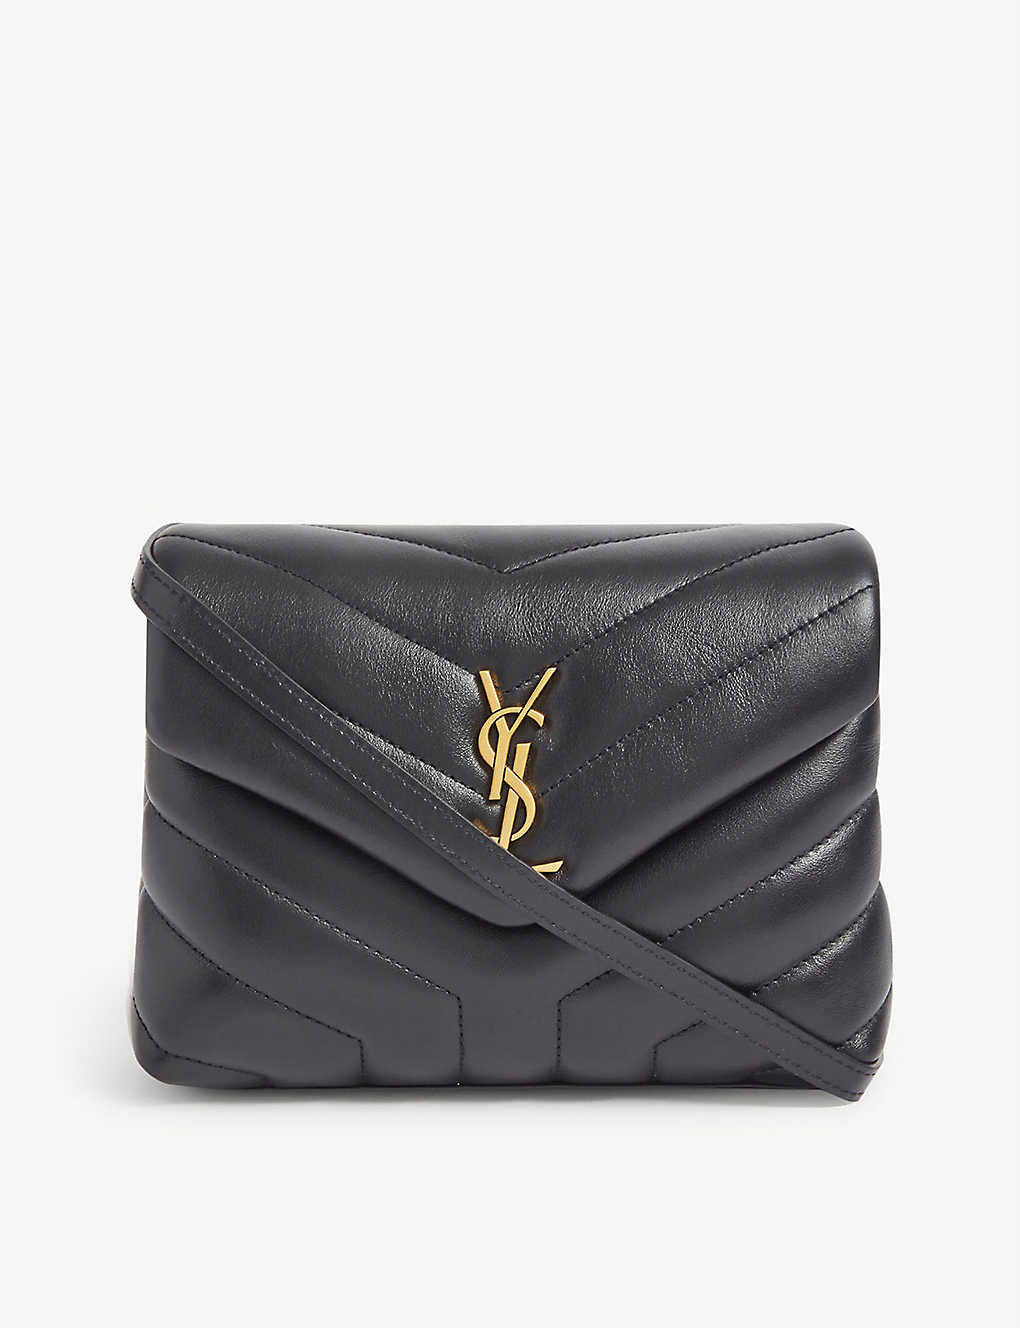 SAINT LAURENT: Loulou Toy monogram leather cross-body bag